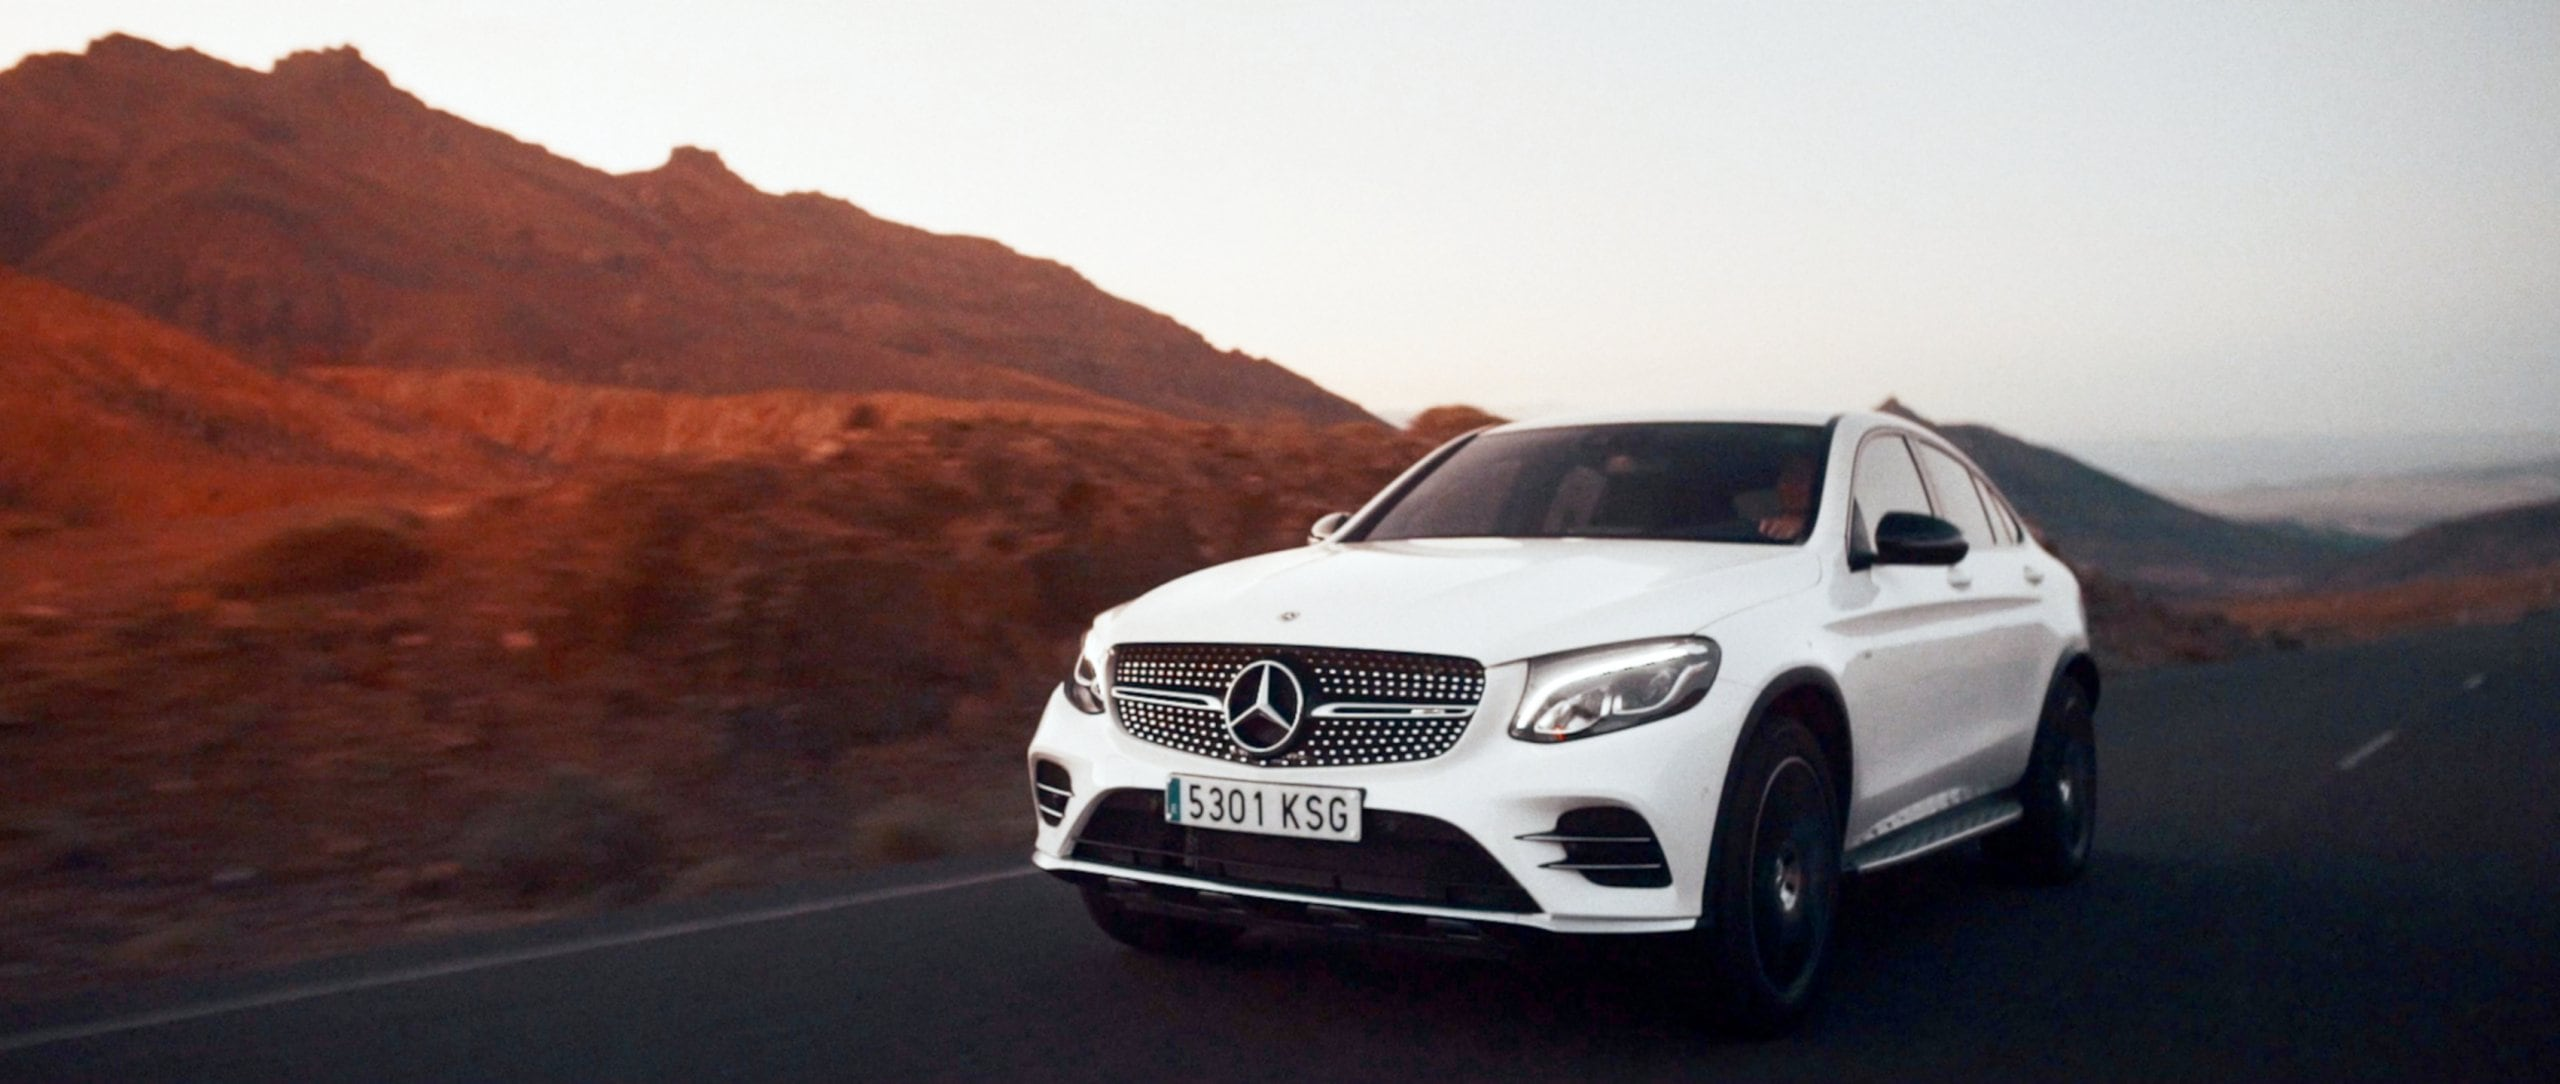 Mercedes-Benz #MBvideocar: The Mercedes-AMG GLC 43 4MATIC Coupé in Spain.